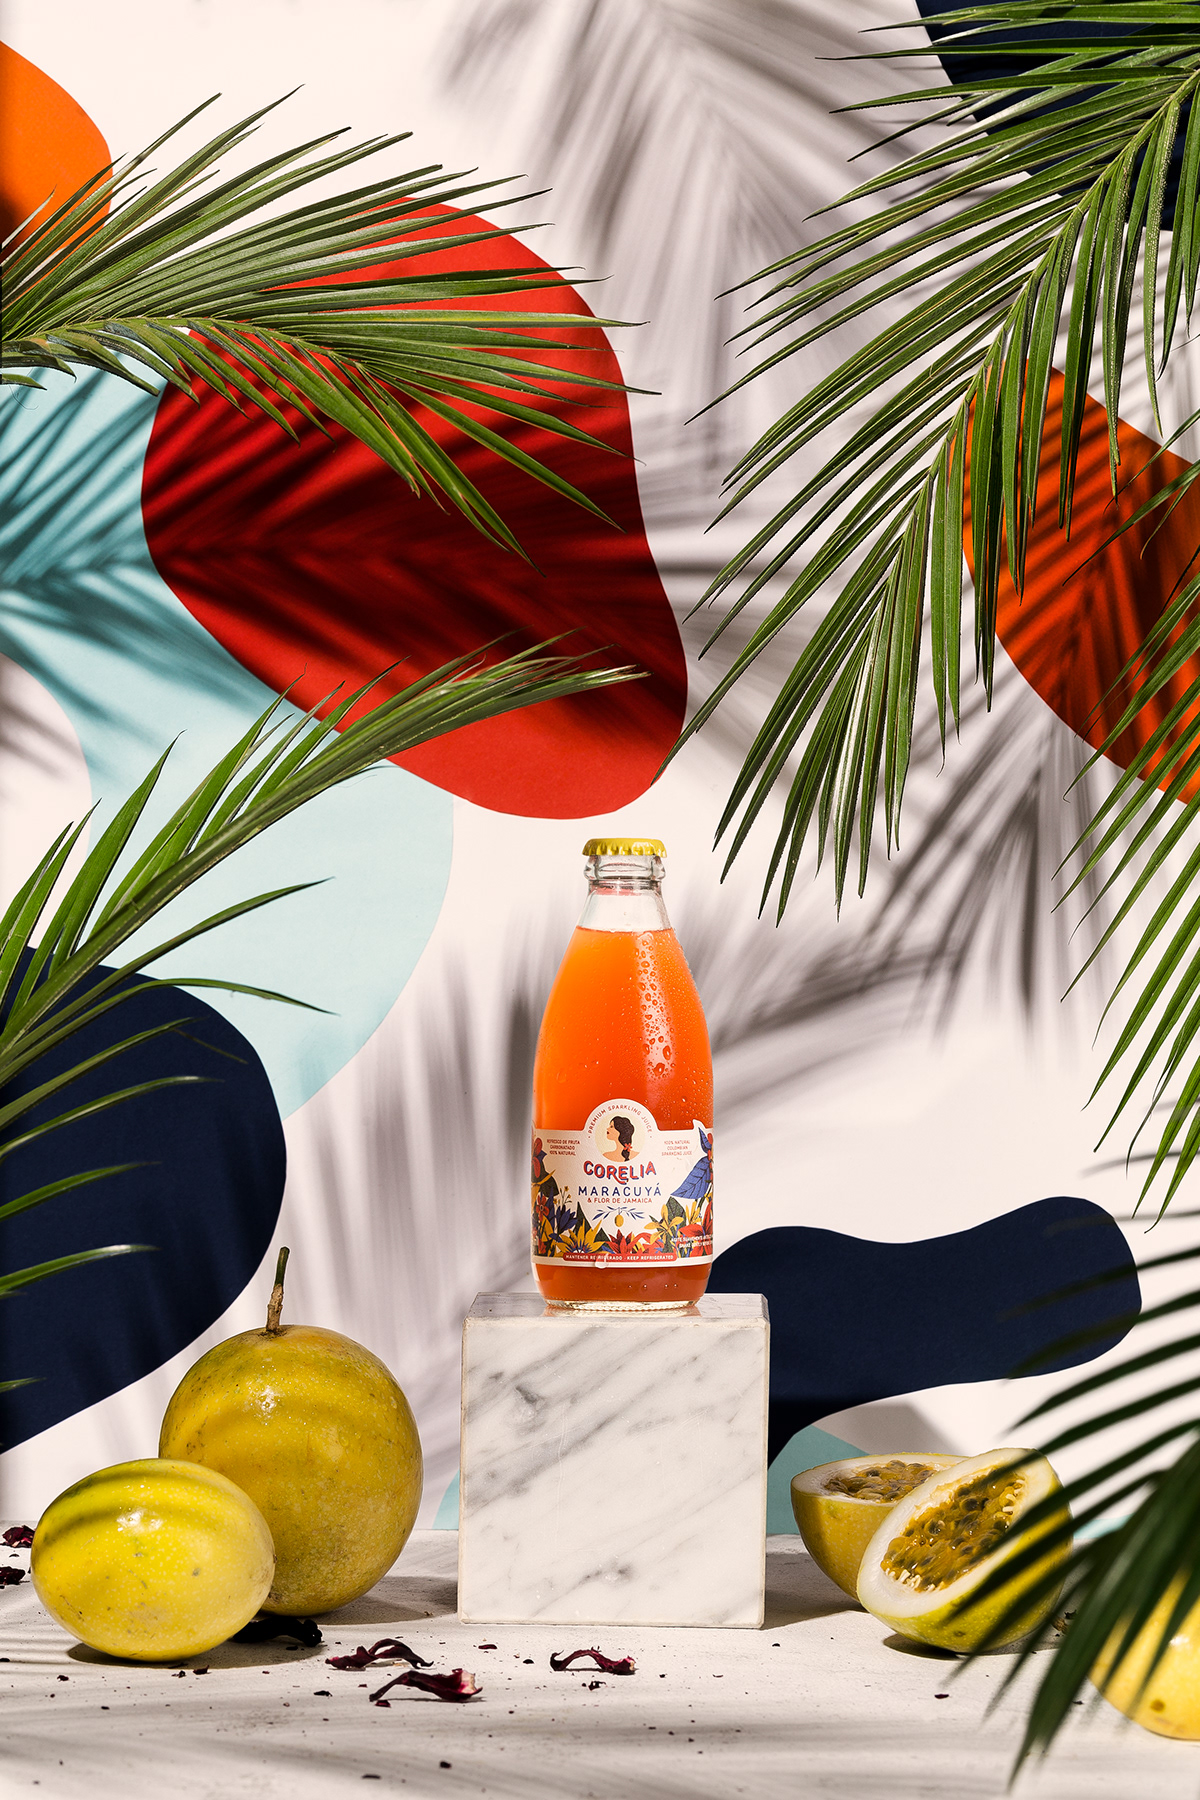 Food  Photography  Tropical juice product shapes Nature styling  art direction  food styling